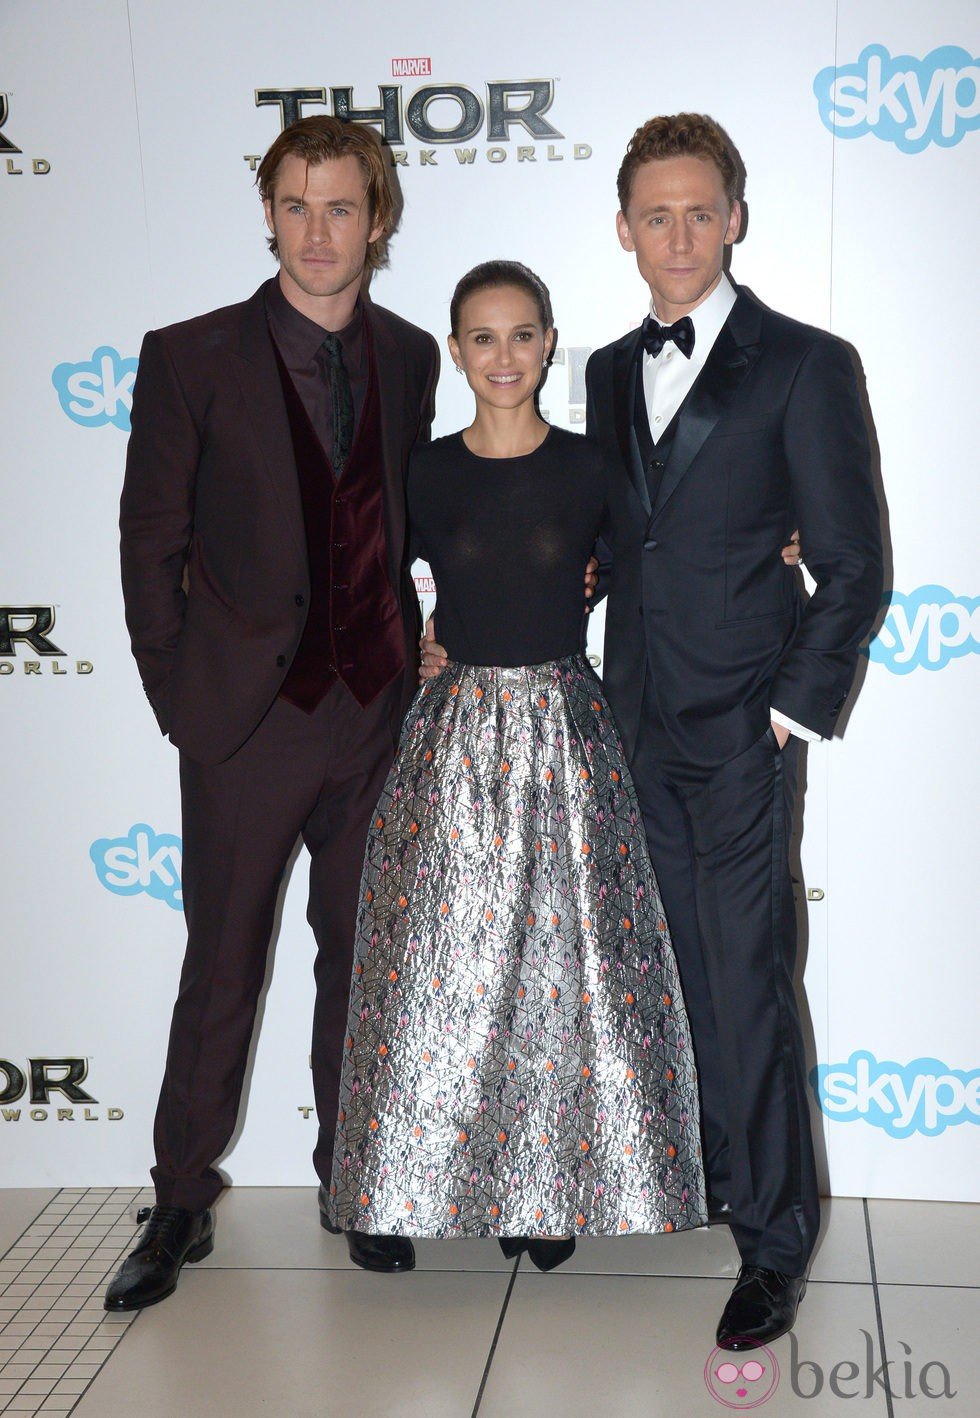 Chris Hemsworth, Natalie Portman y Tom Hiddleston en el estreno de 'Thor: El mundo oscuro' en Londres